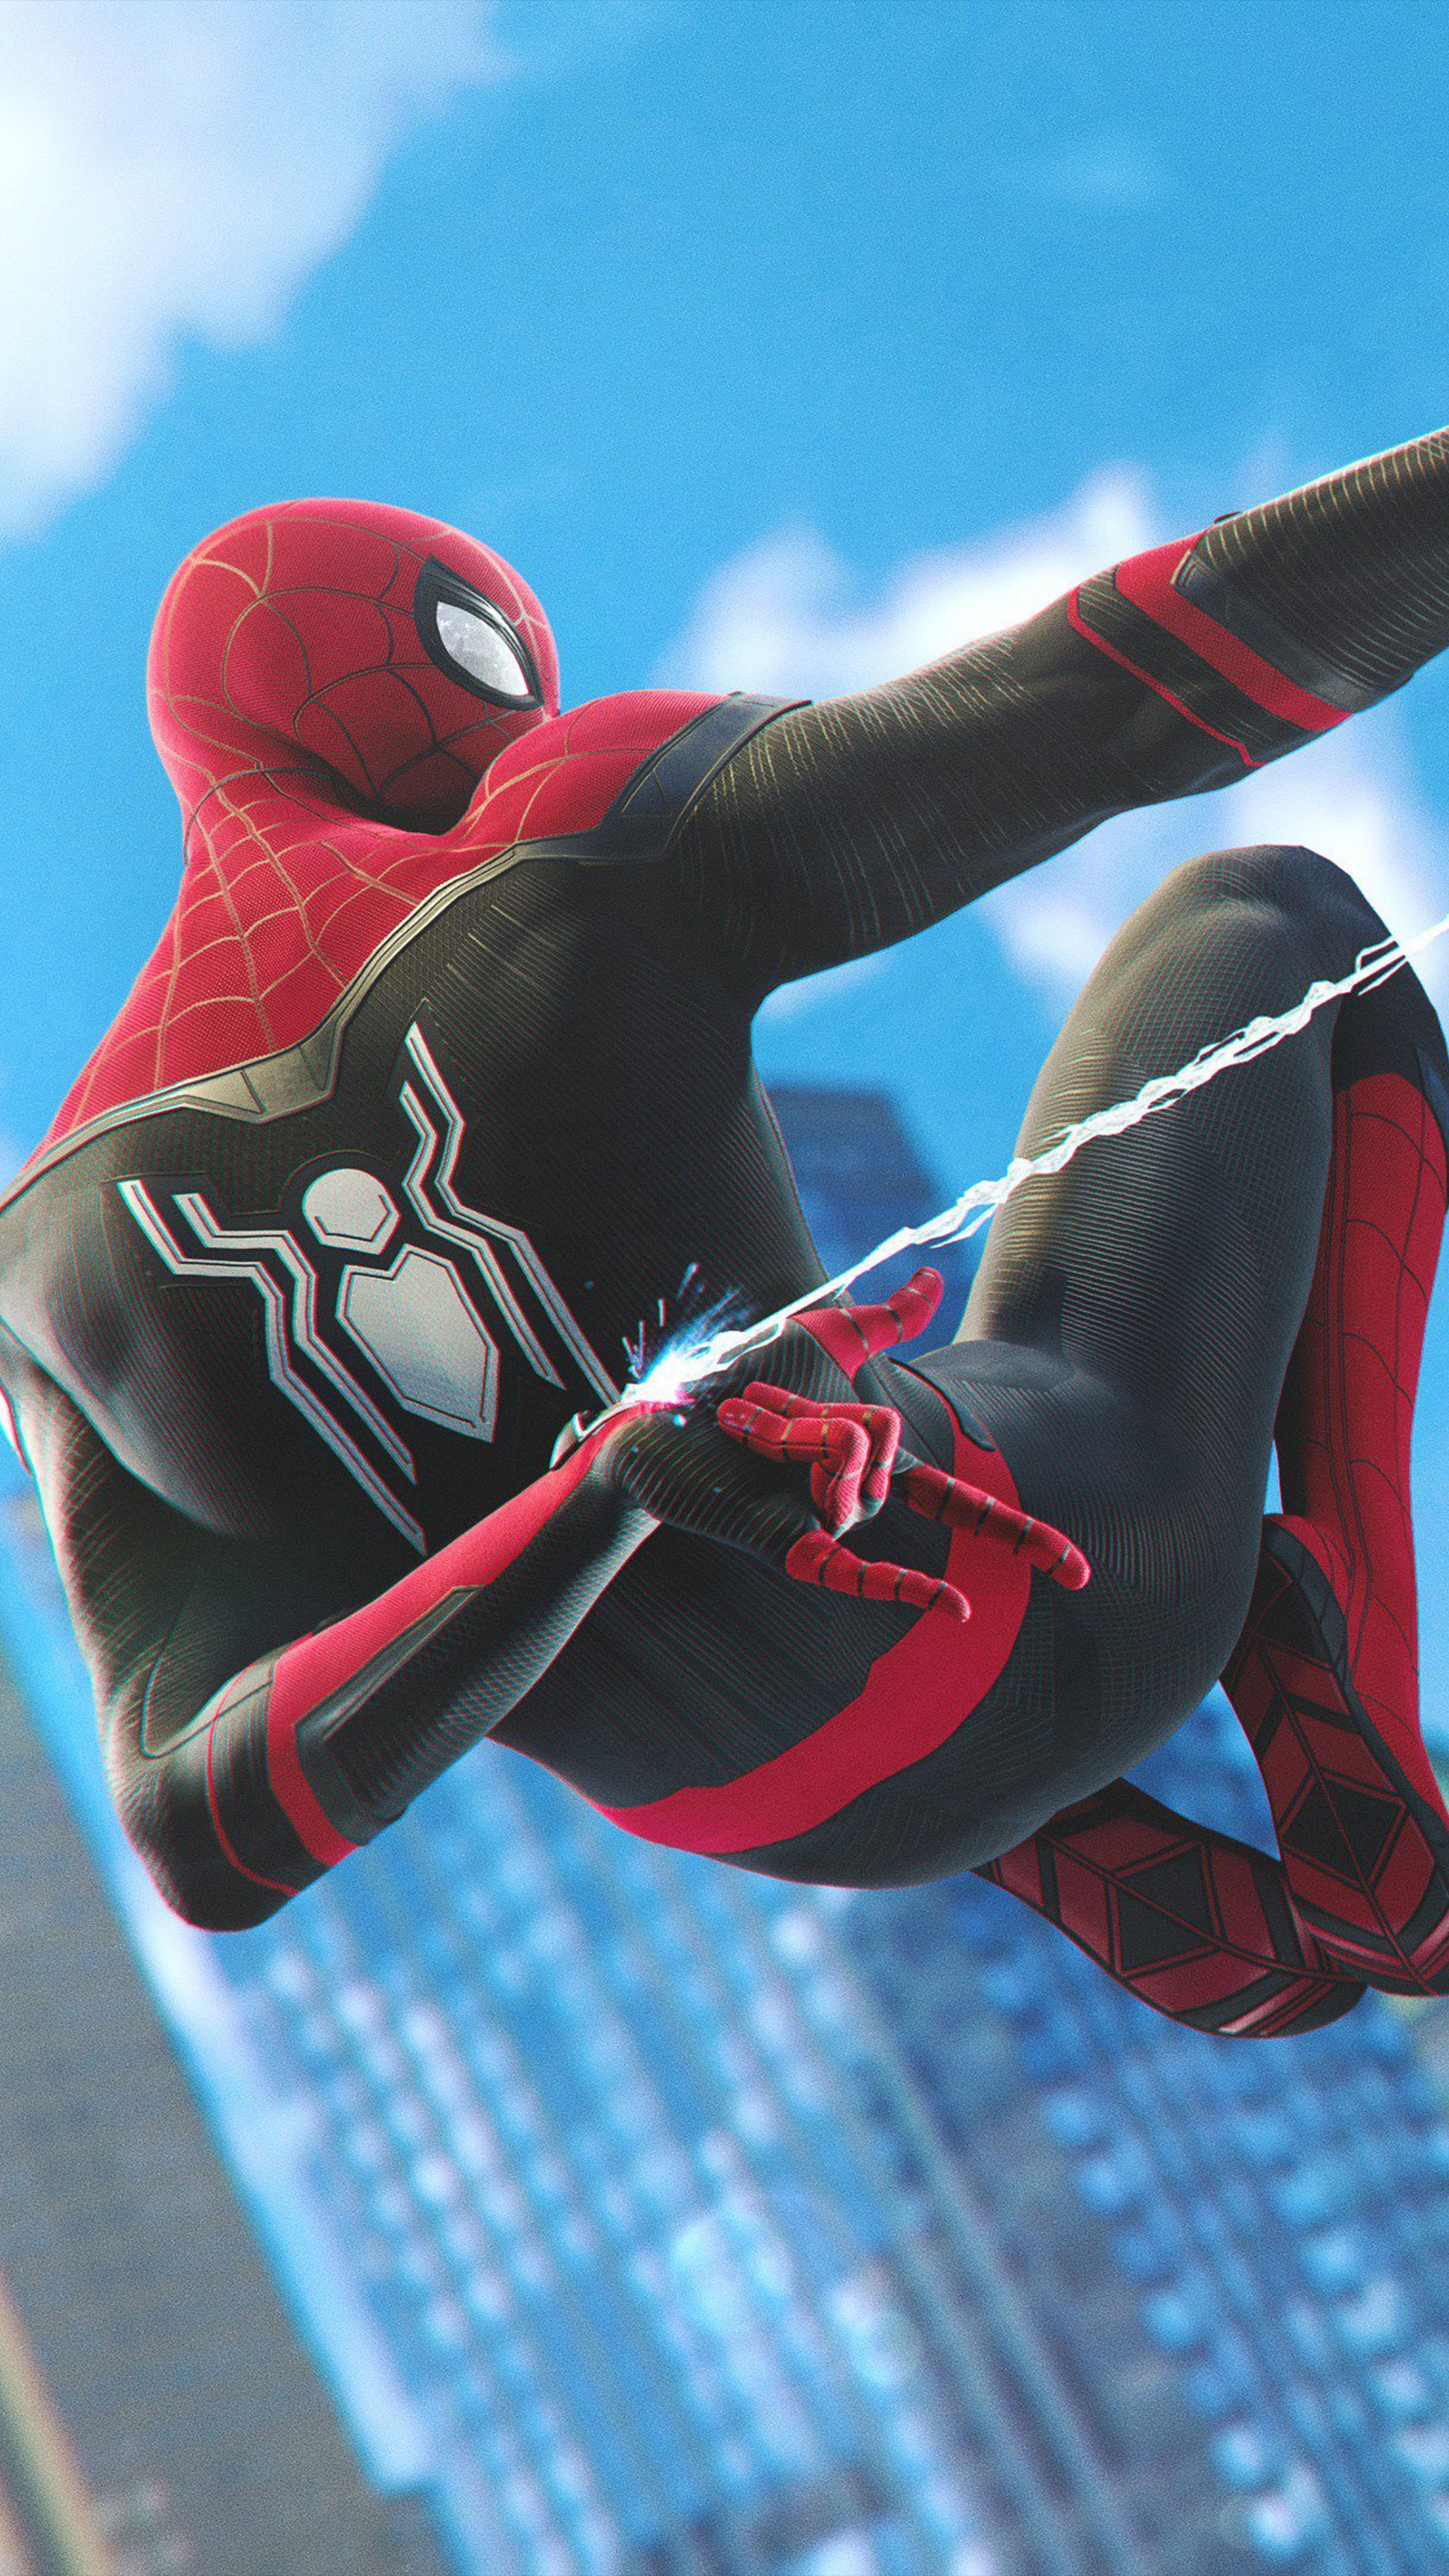 Spider Man Far From Home Ps4 Free 4k Ultra Hd Mobile Wallpaper